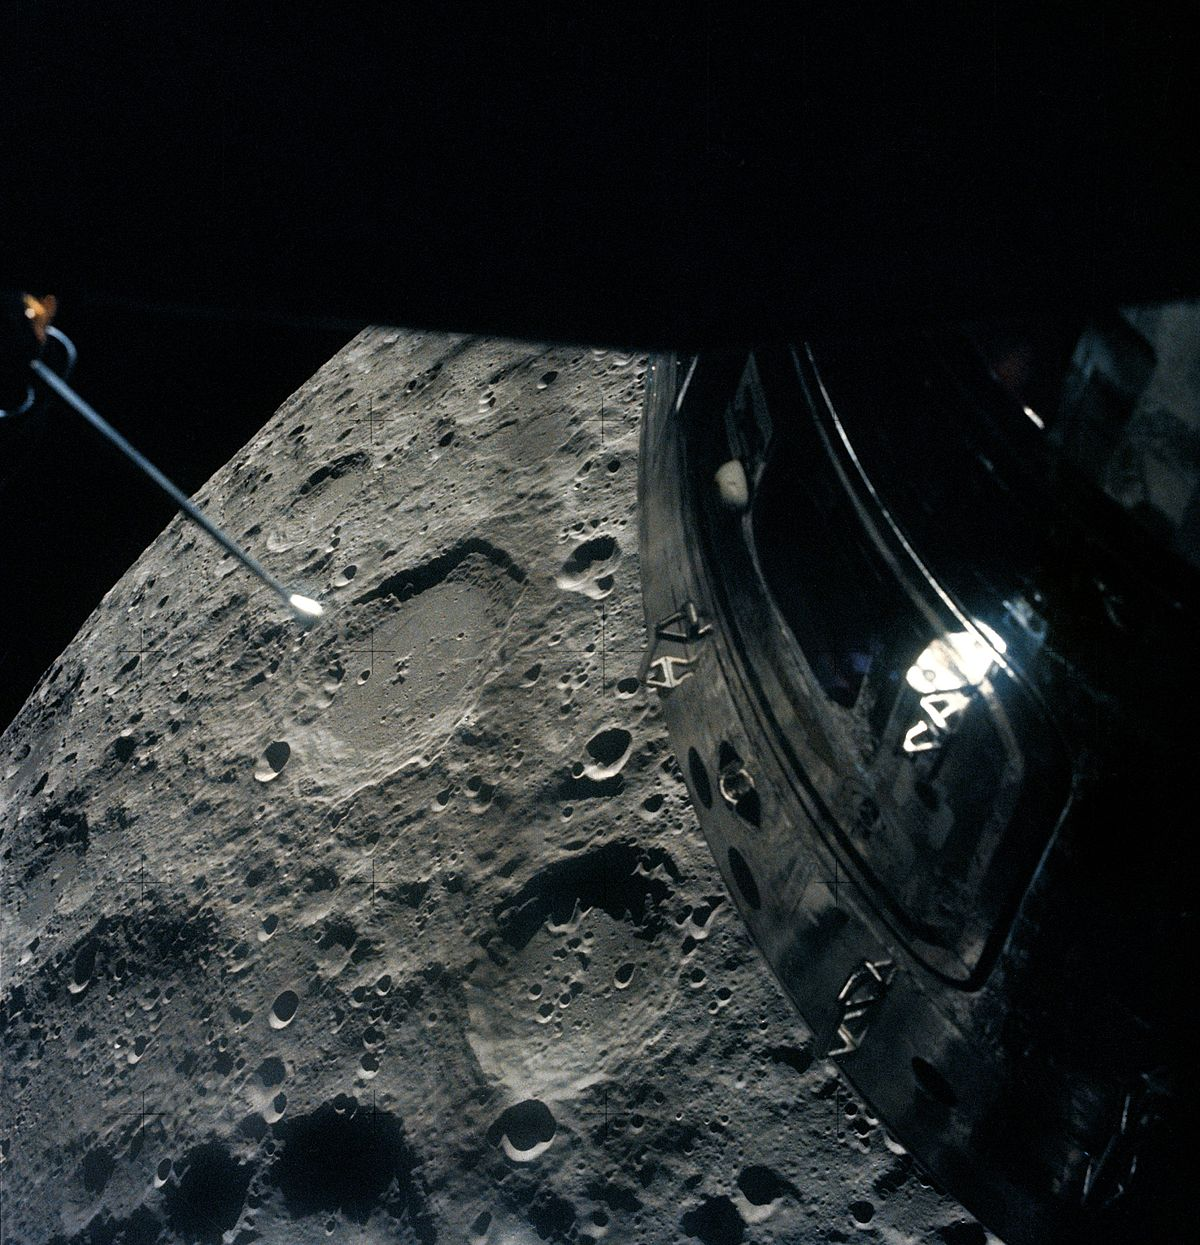 apollo space orbit - photo #25